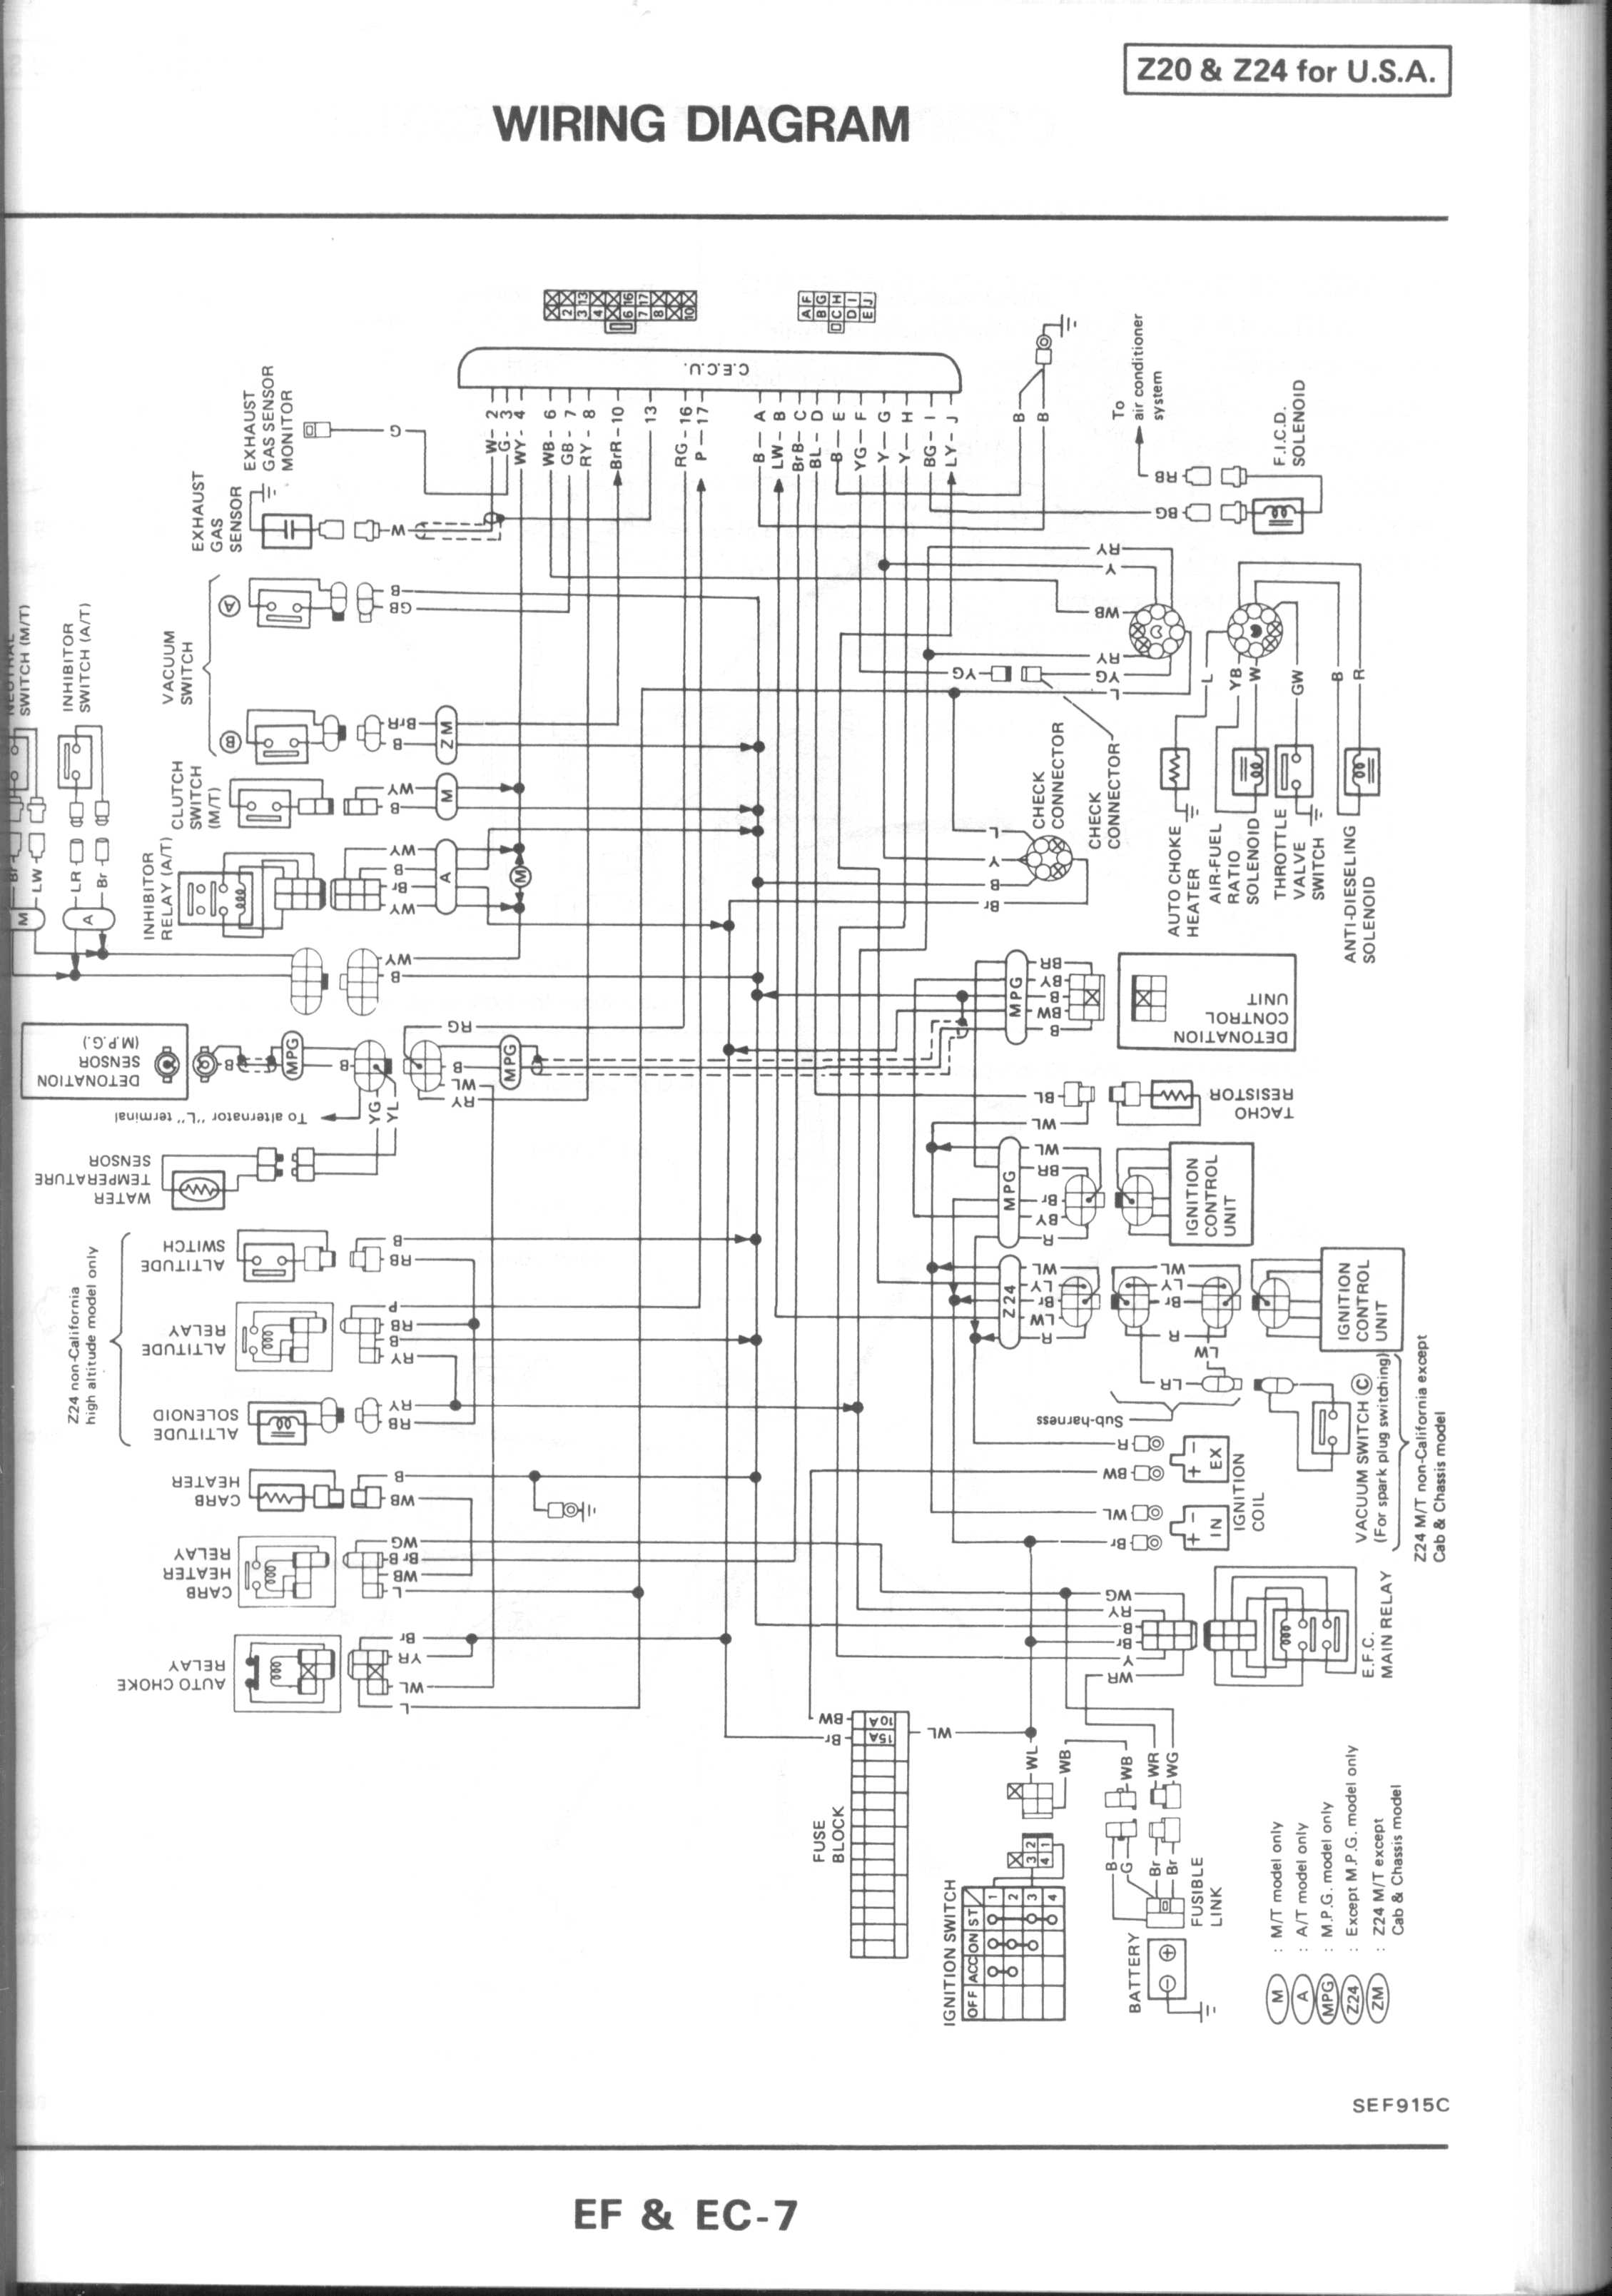 1988 nissan pickup radio wiring diagram wiring diagrams konsult1988 nissan wiring diagram wiring diagram new 1988 nissan pickup radio wiring diagram